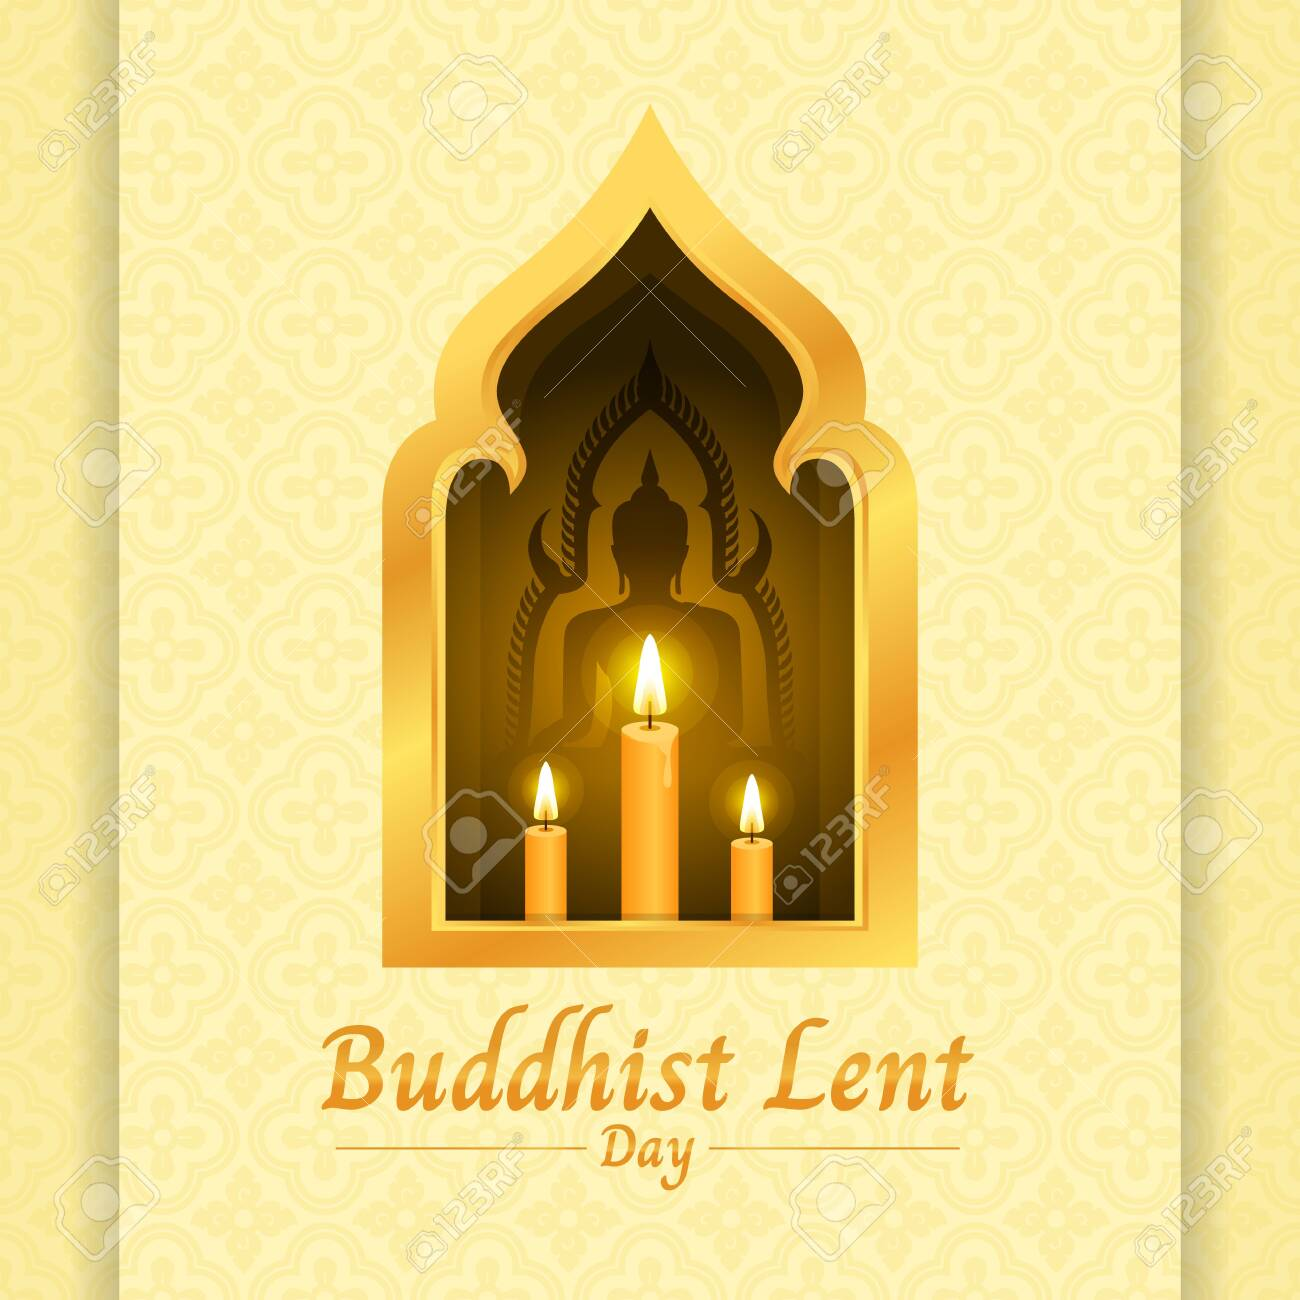 Buddhist lent day banner with yellow candle light and Buddha sign in gold window on soft yellow texture - 125967282